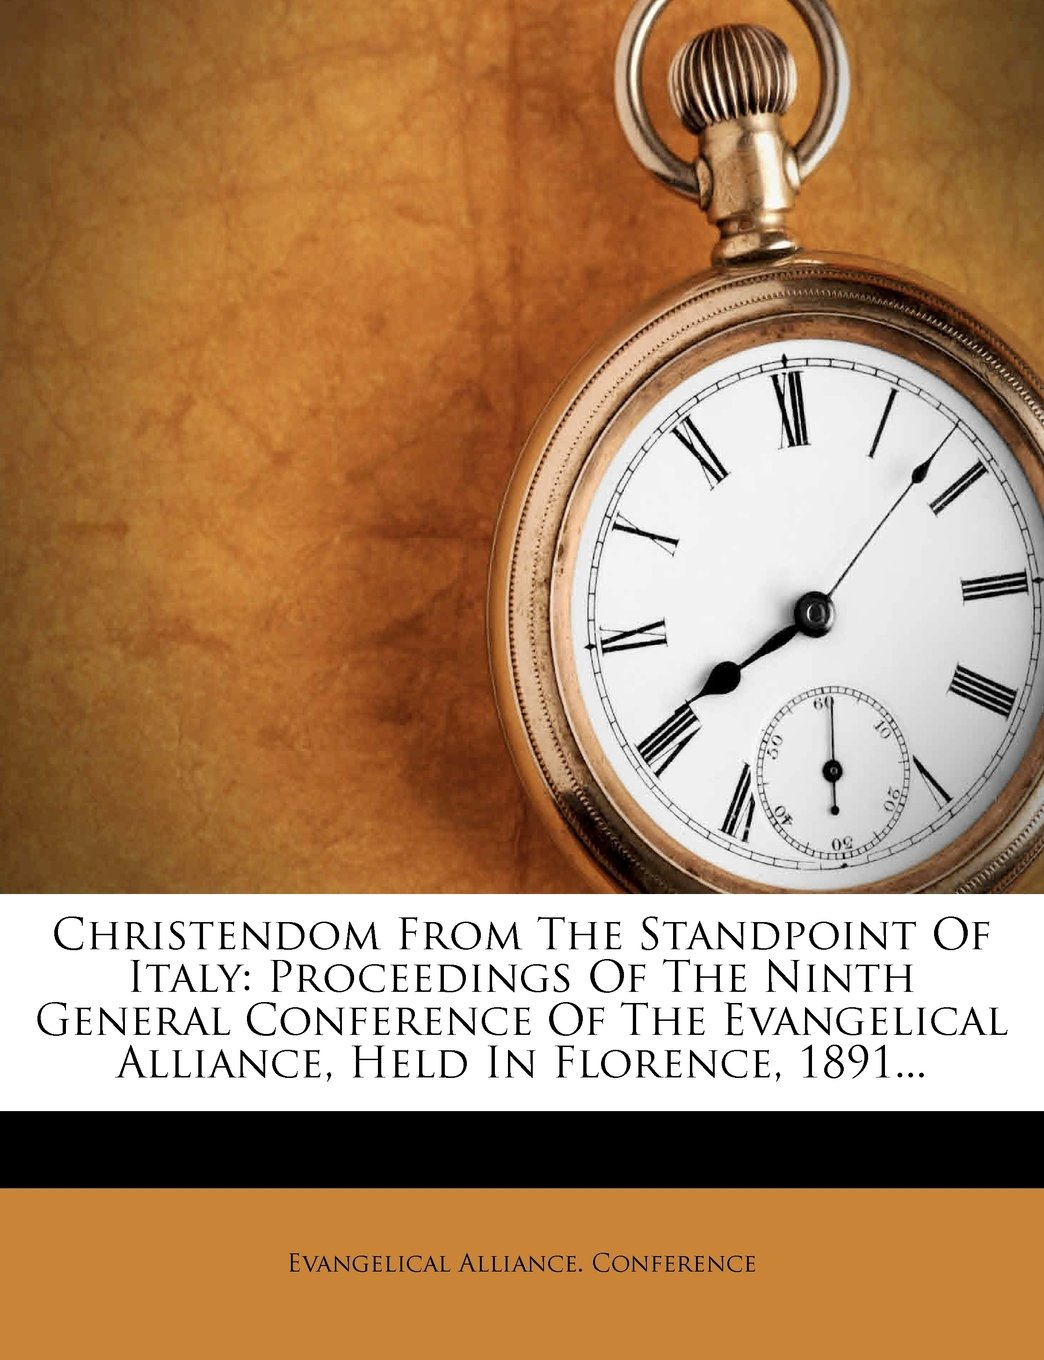 Christendom From The Standpoint Of Italy: Proceedings Of The Ninth General Conference Of The Evangelical Alliance, Held In Florence, 1891... ebook